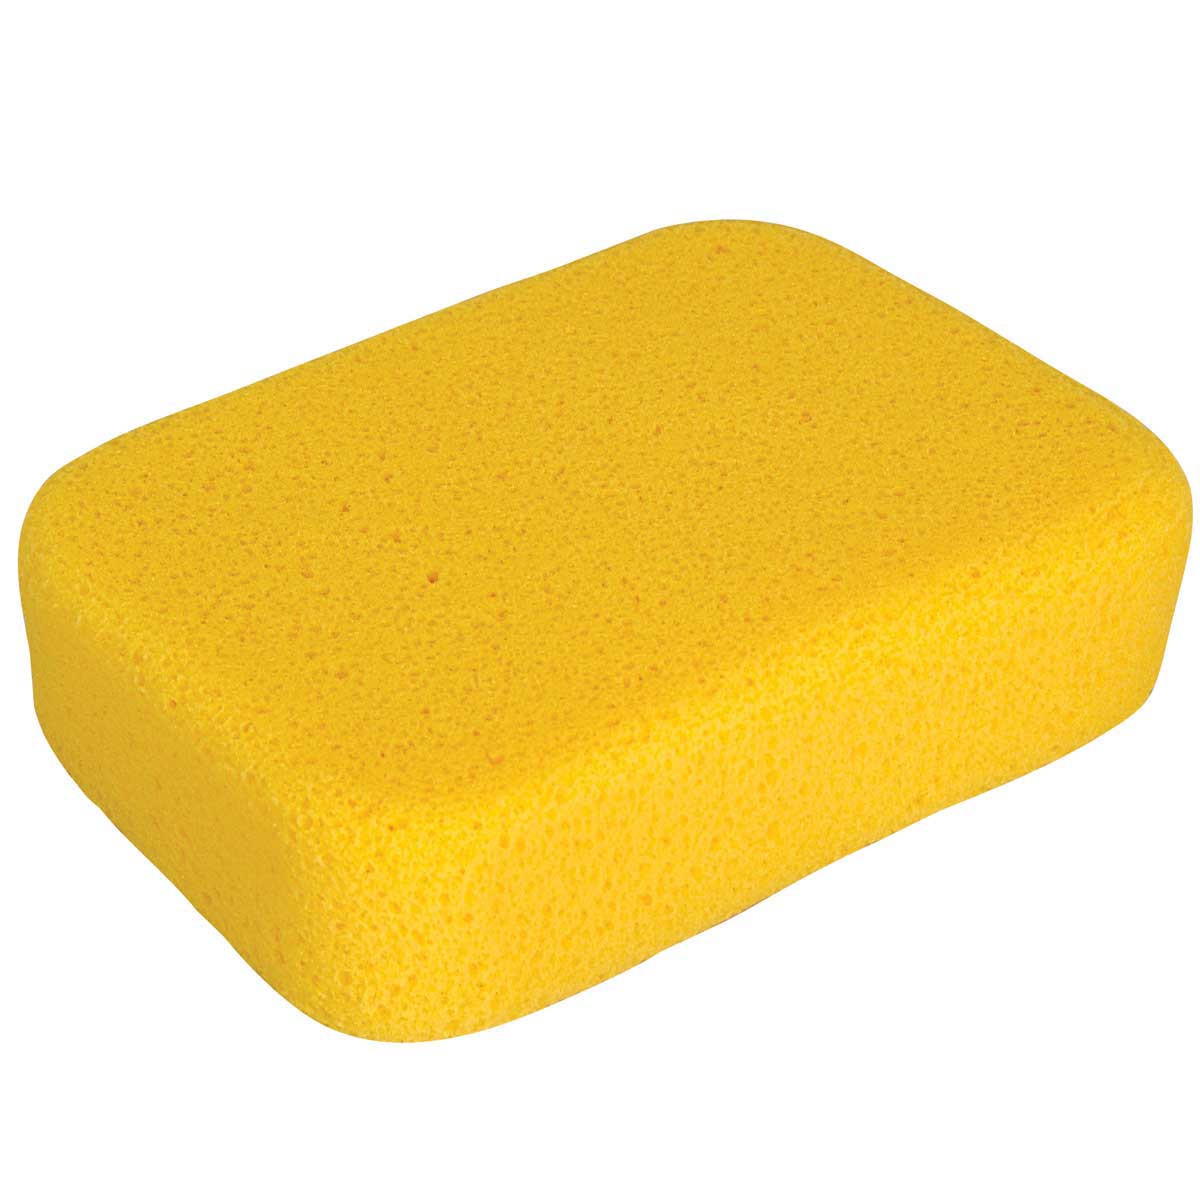 XL Hydro Tile Grout Sponge